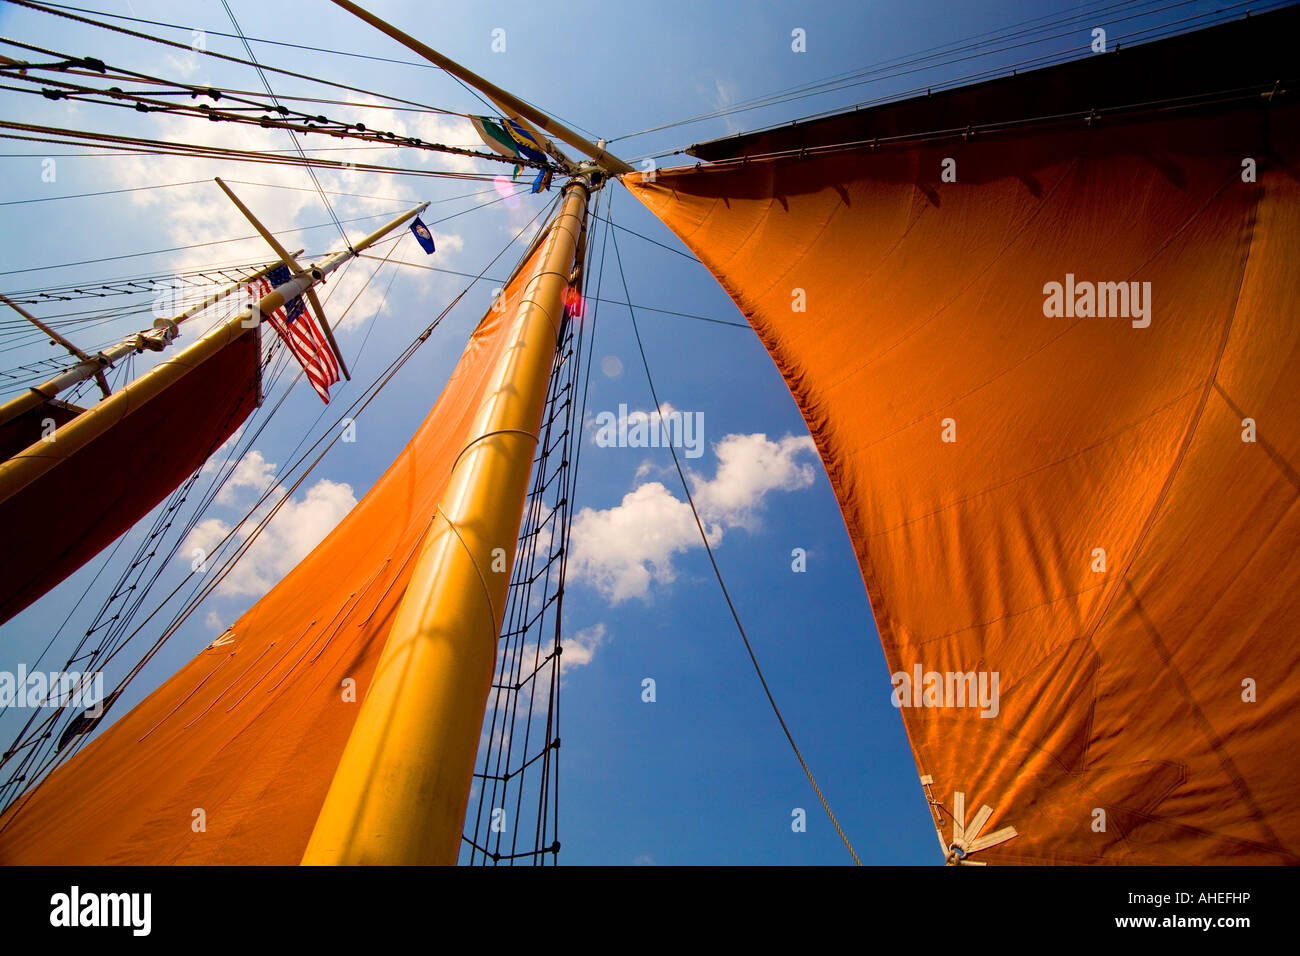 Sails on a tall ship Stock Photo